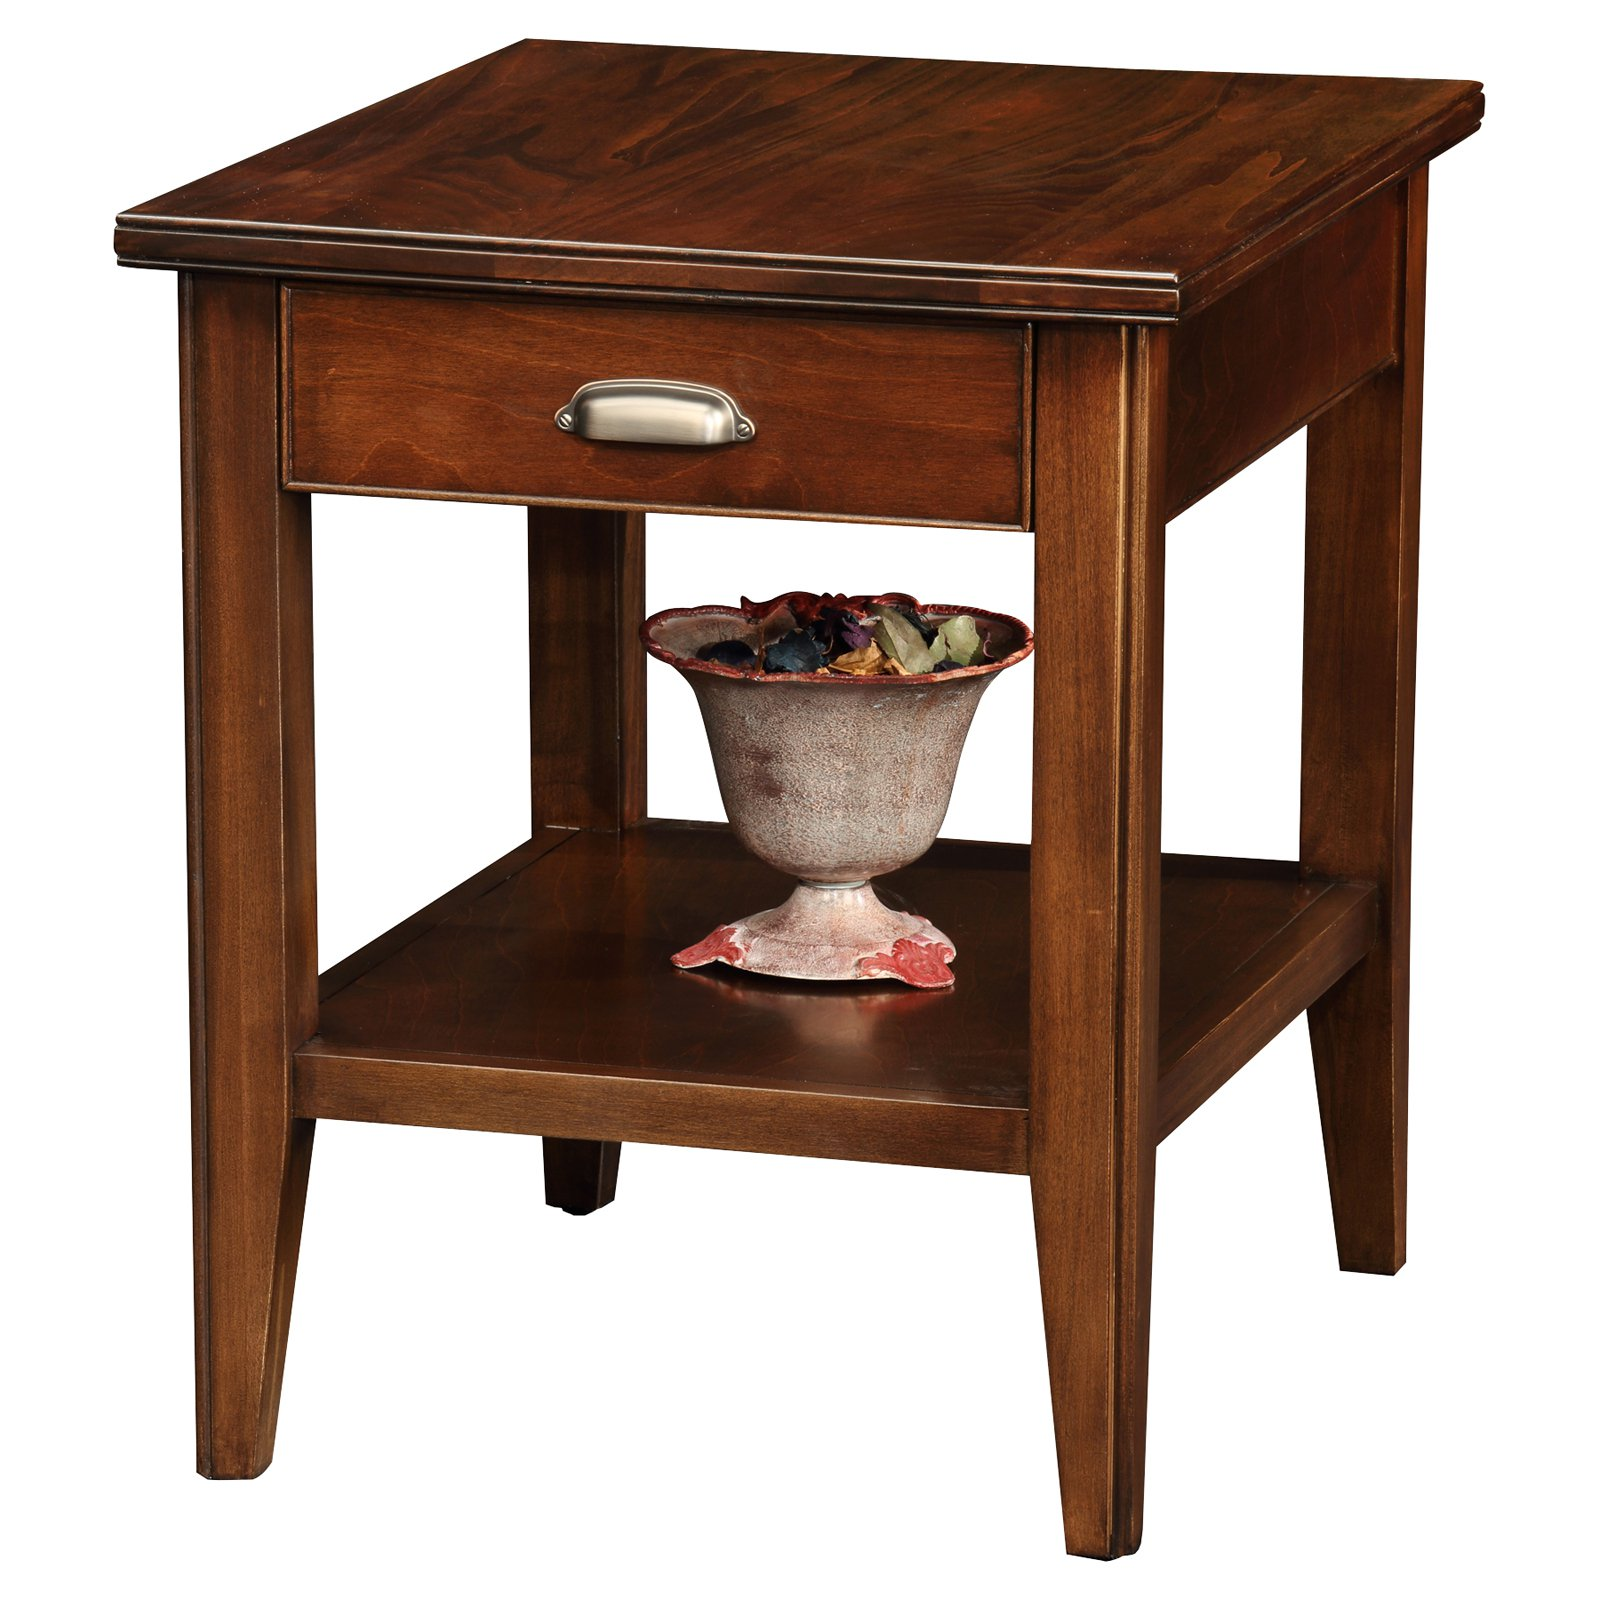 Leick Home Laurent Storage End Table with Drawer